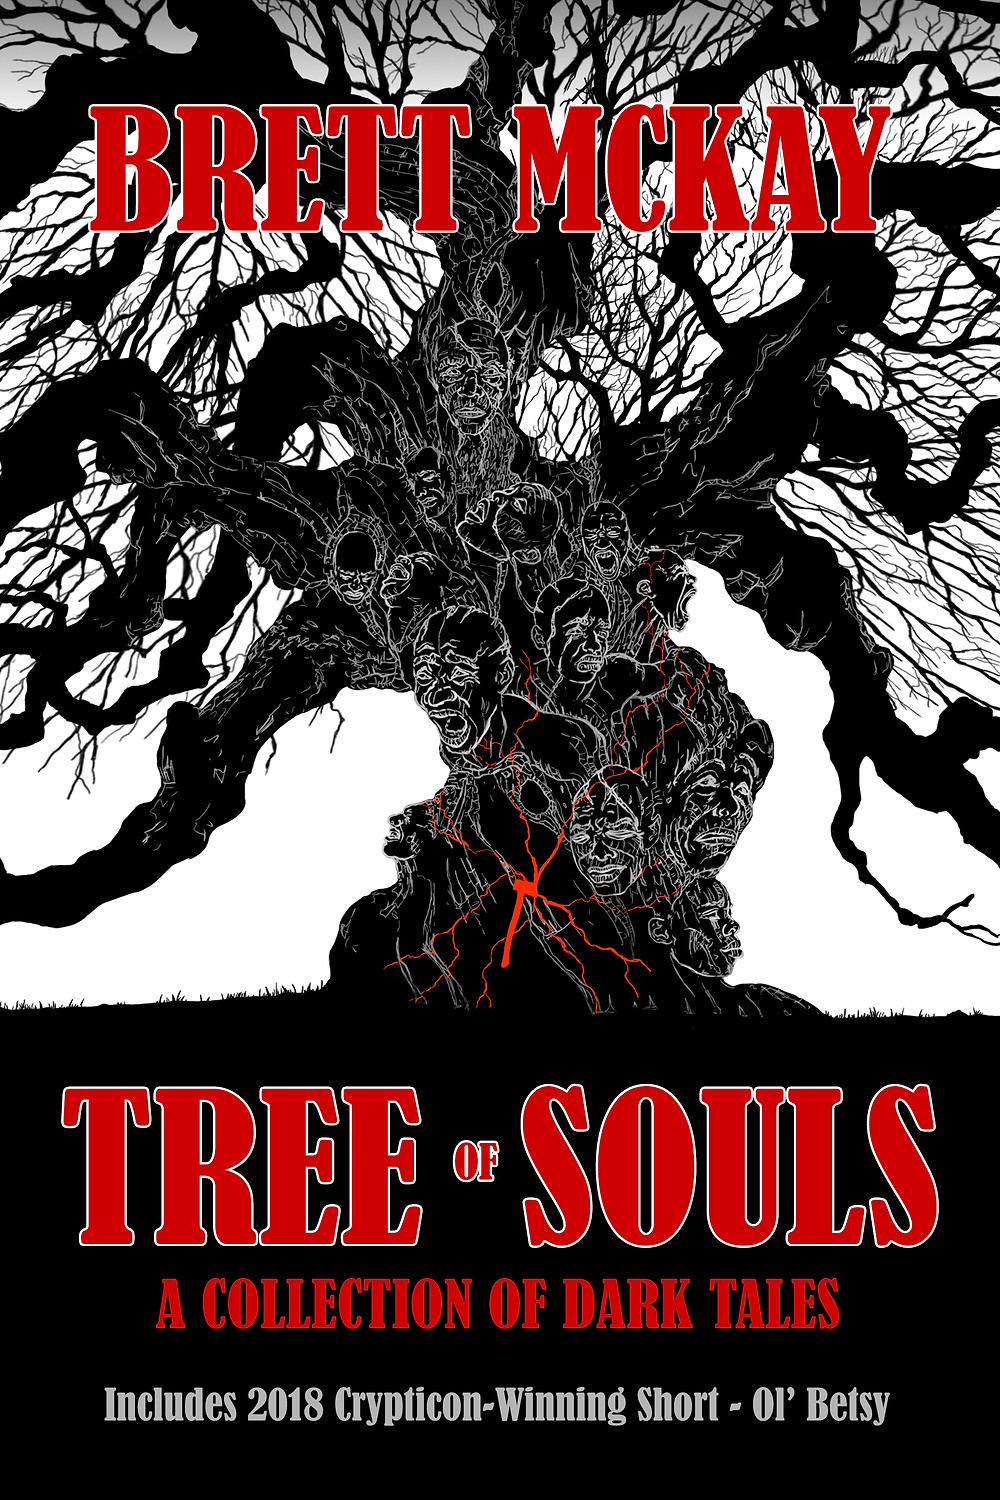 Inspirations for the tales within Tree of Souls